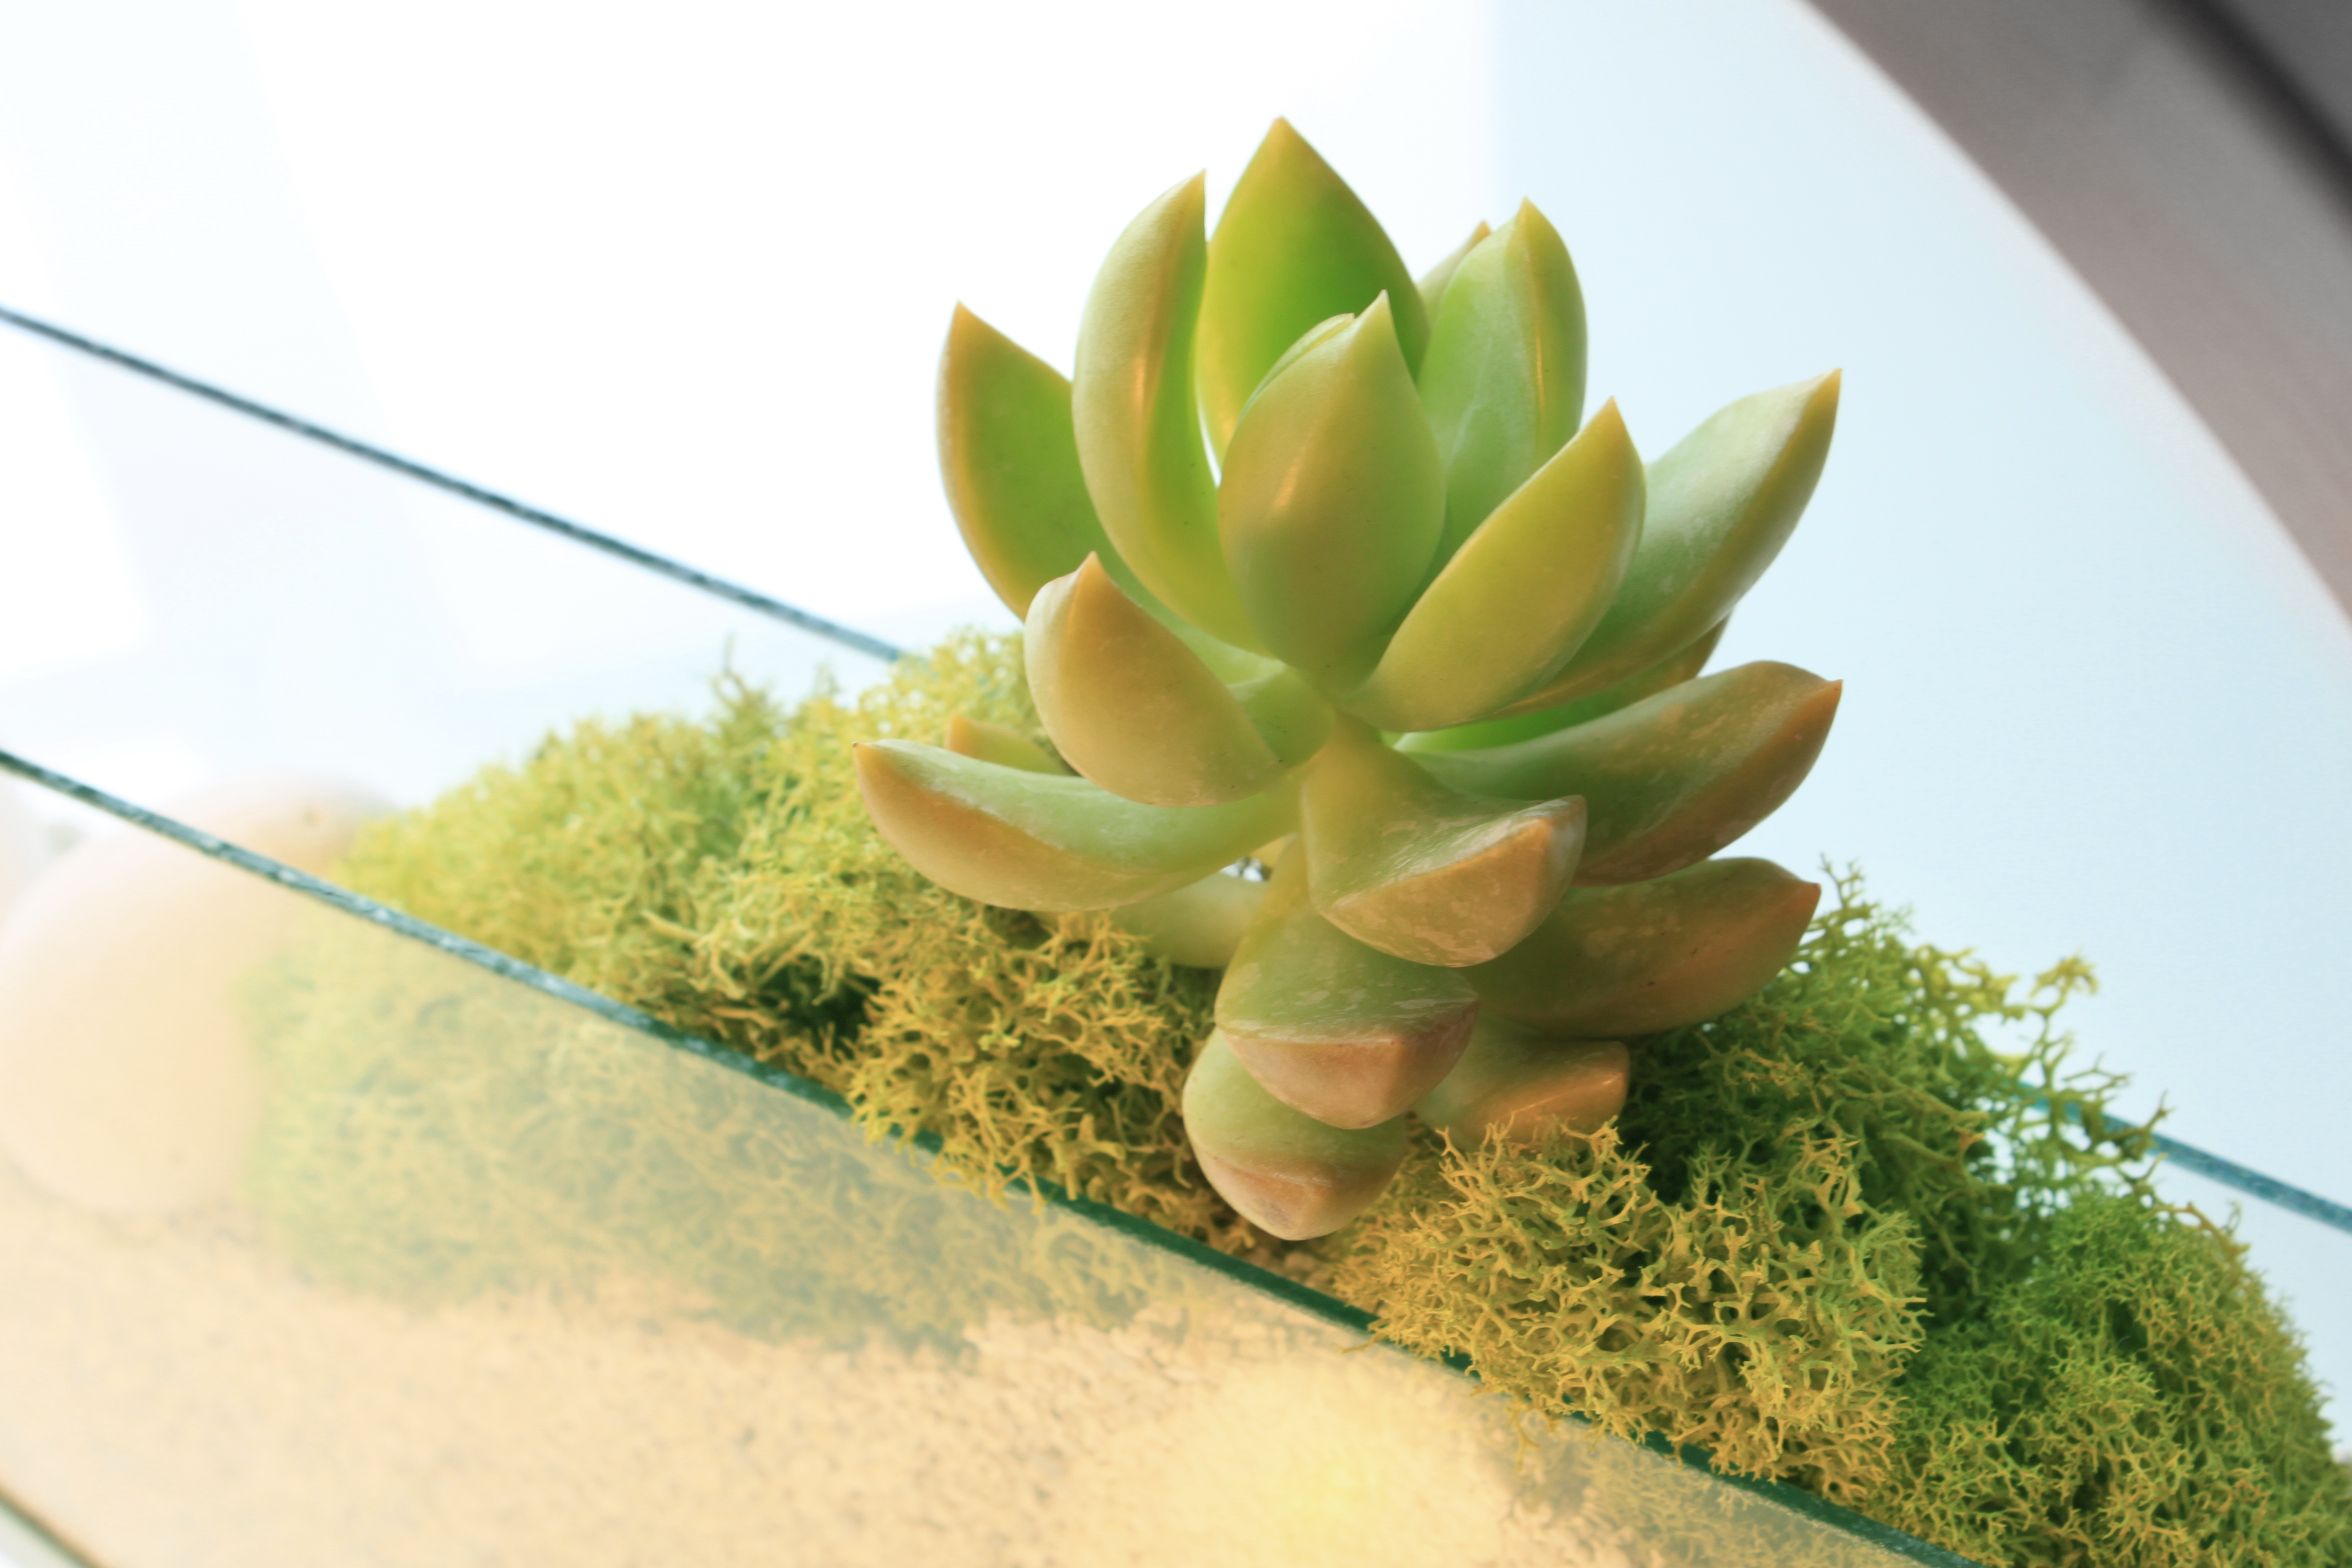 W_TERRARIUM_PLant_close_up